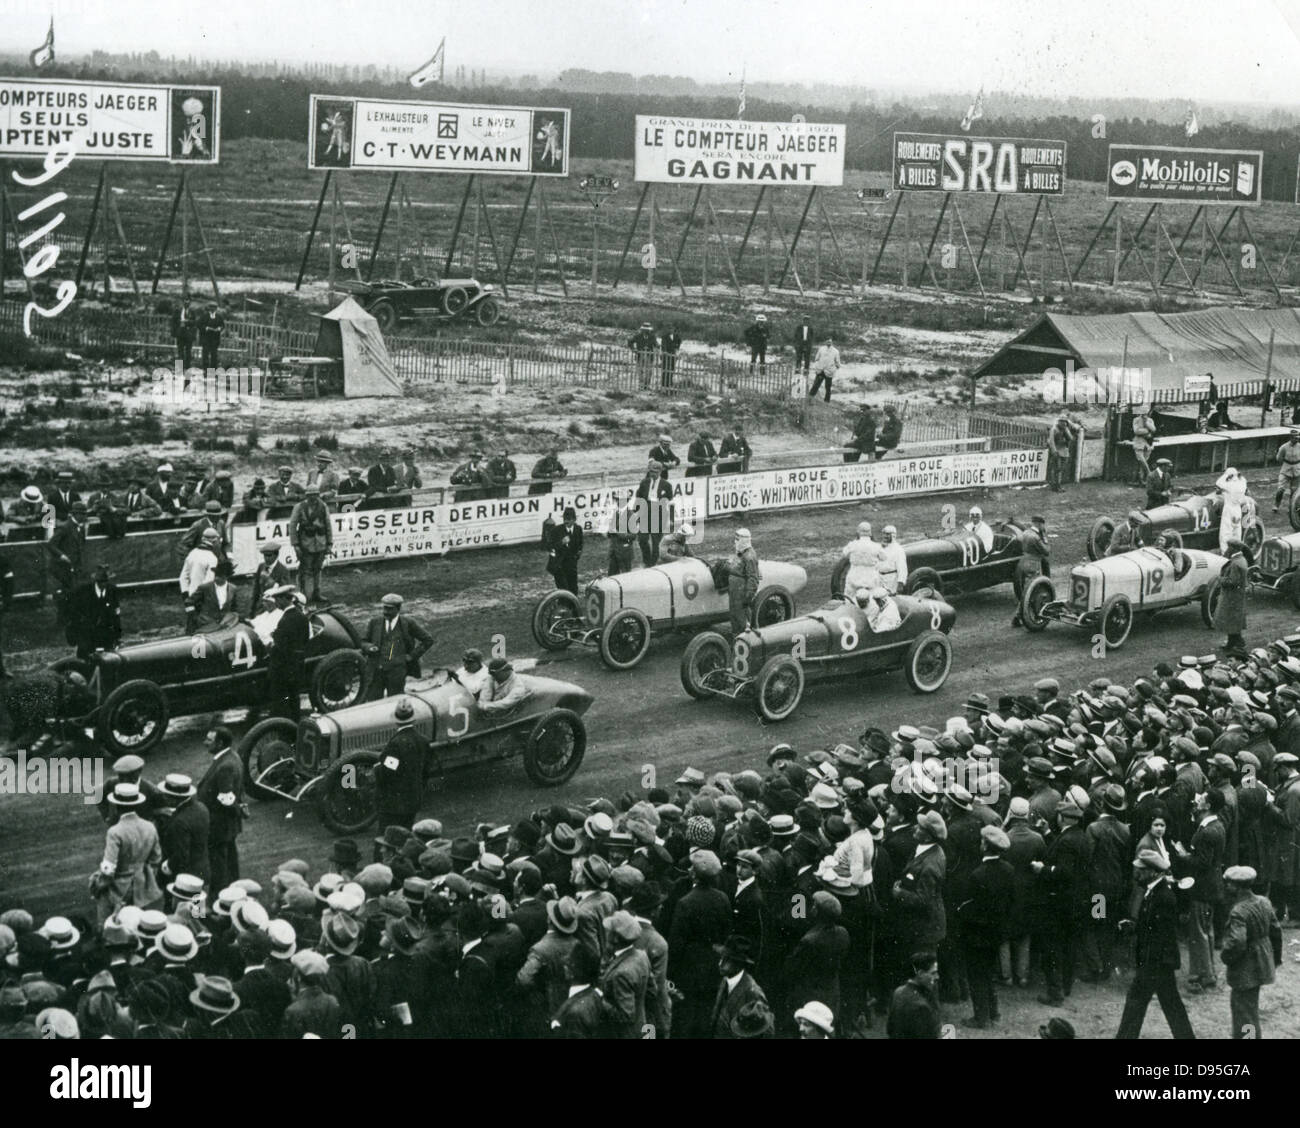 FRENCH GRAND PRIX  at Le Mans on Monday 25 July 1921. The white Duesenbergs at the start are listed in Description - Stock Image